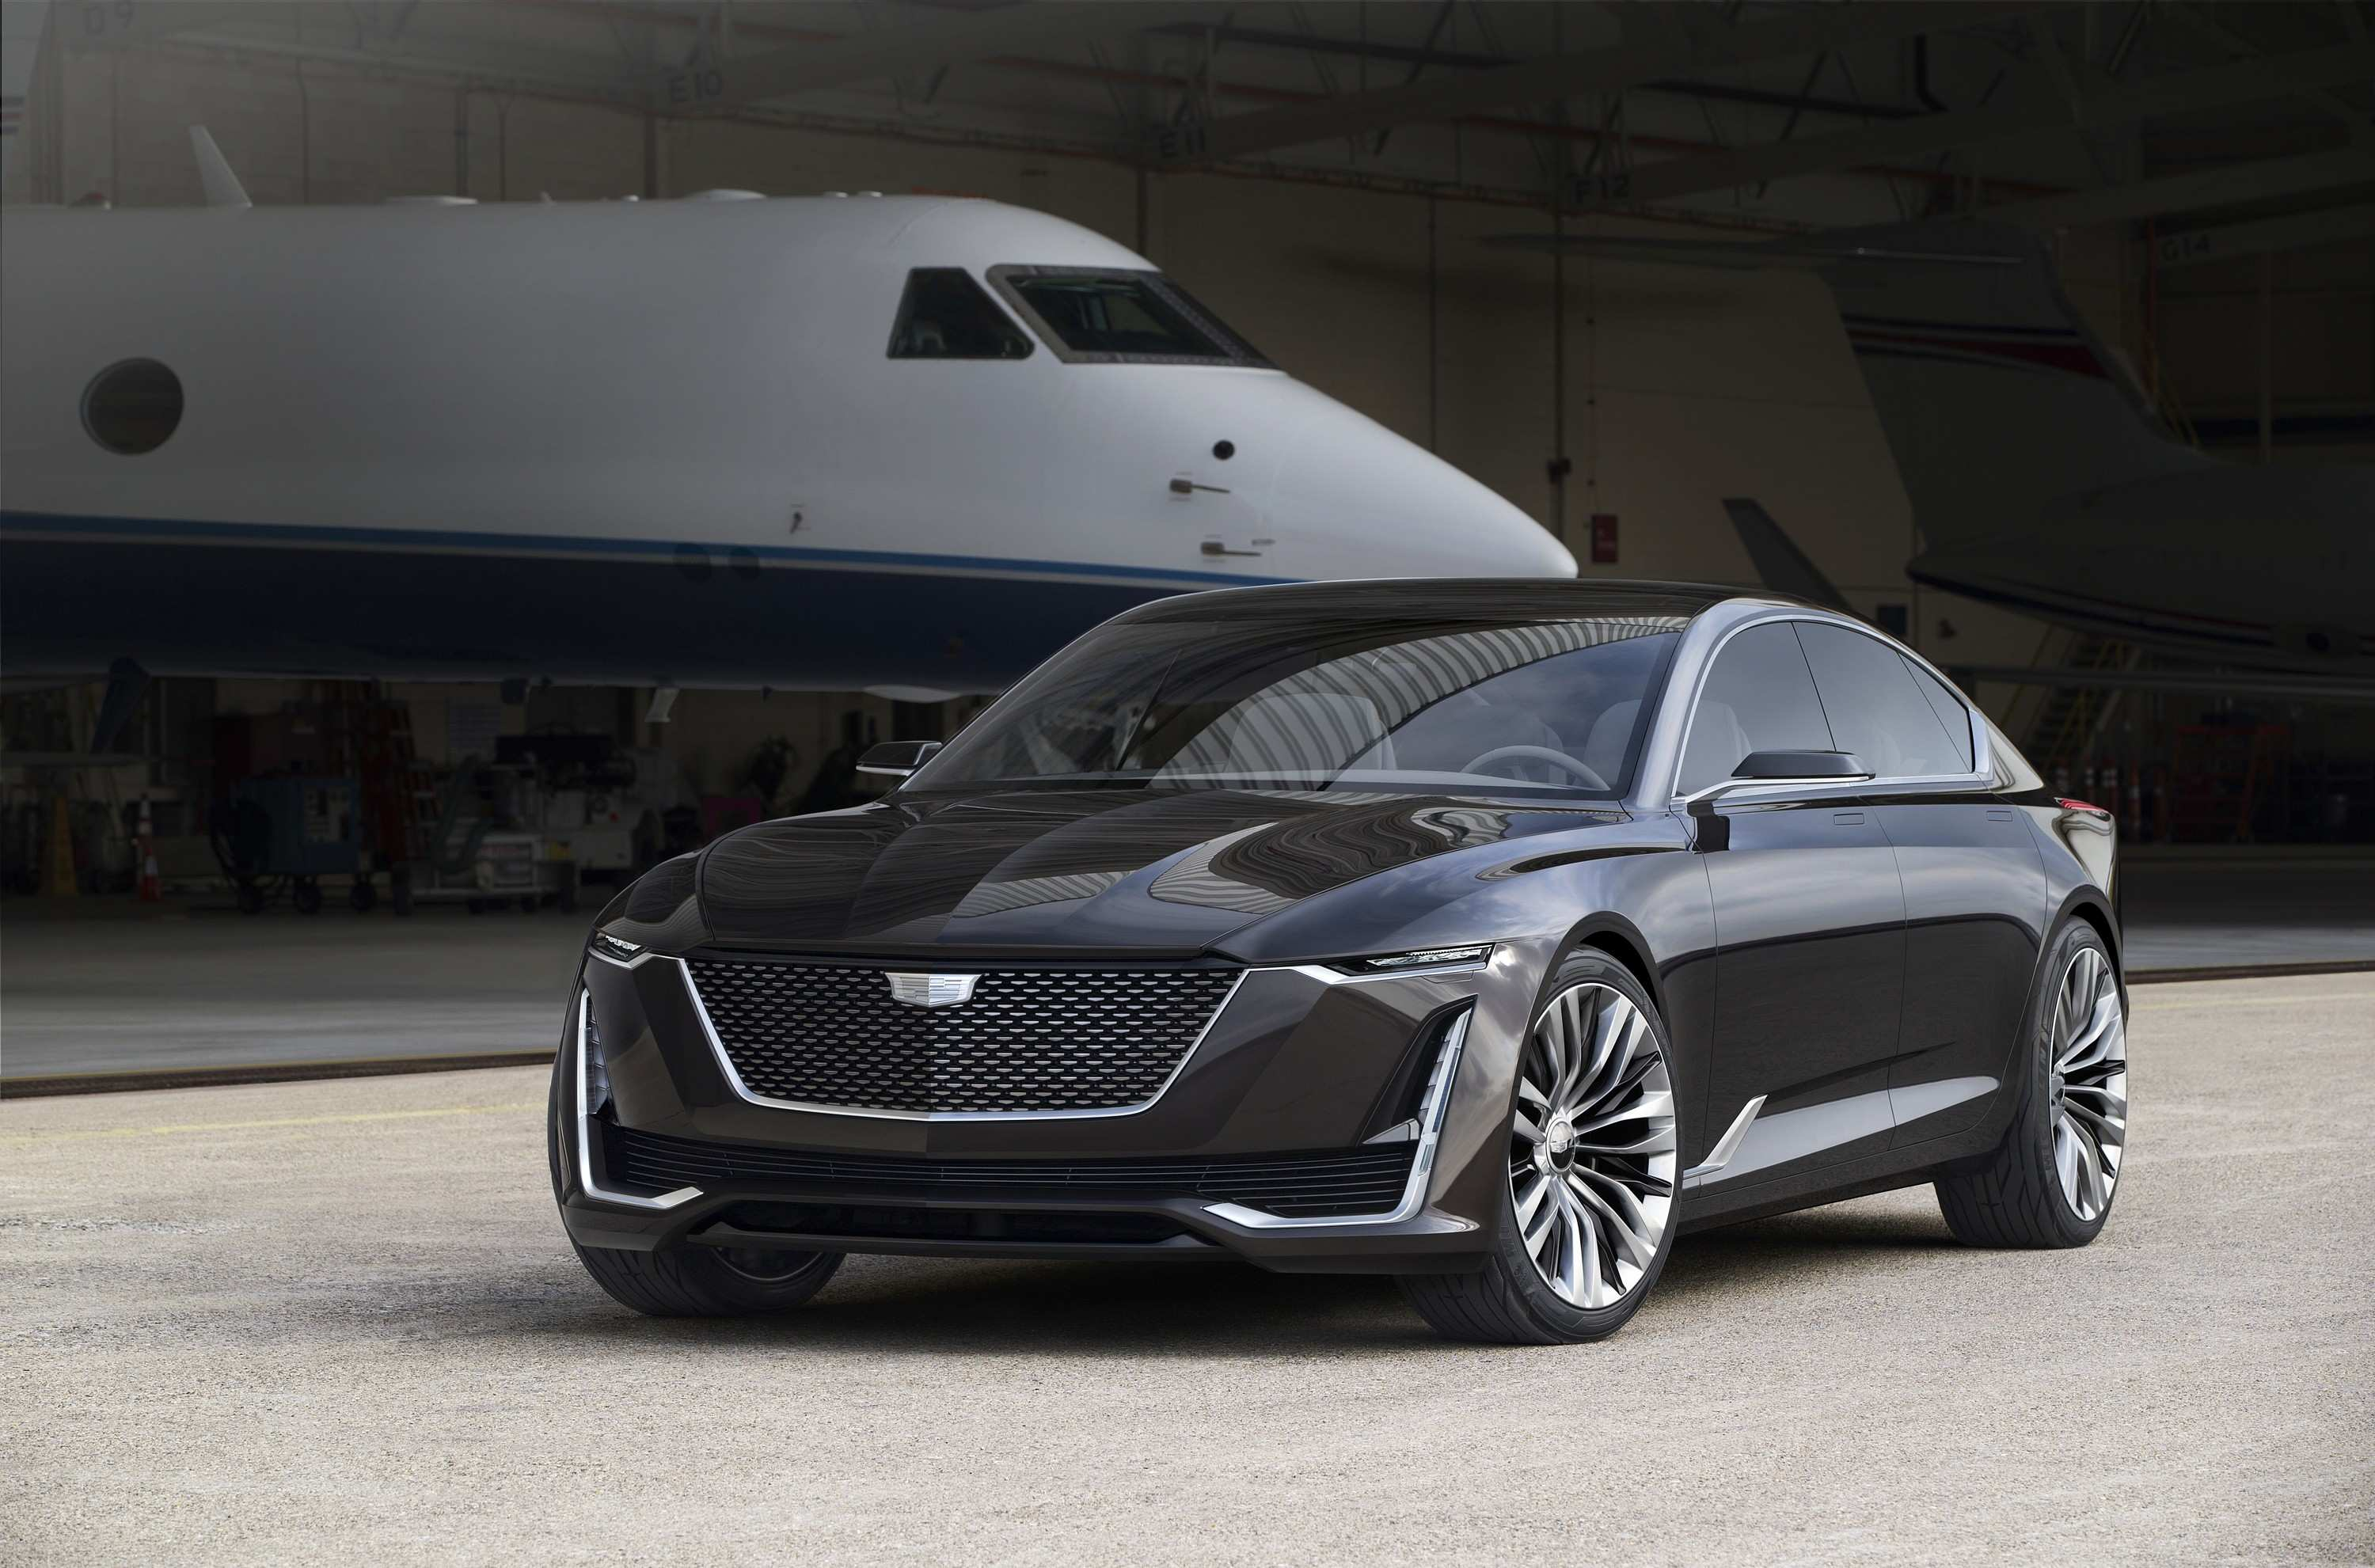 98 A 2020 Cadillac Ct6 First Drive